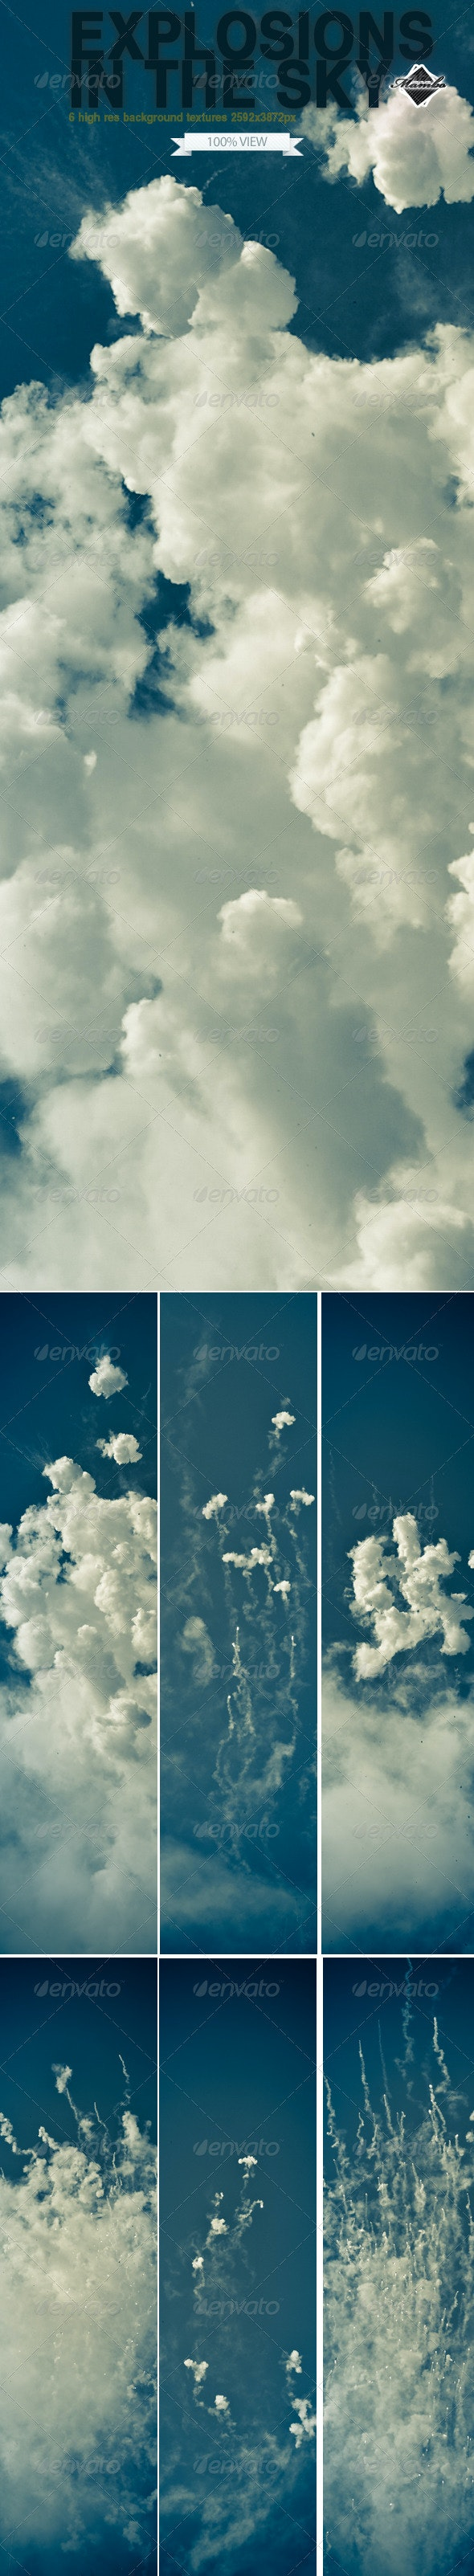 Explosions in the sky - Nature Textures